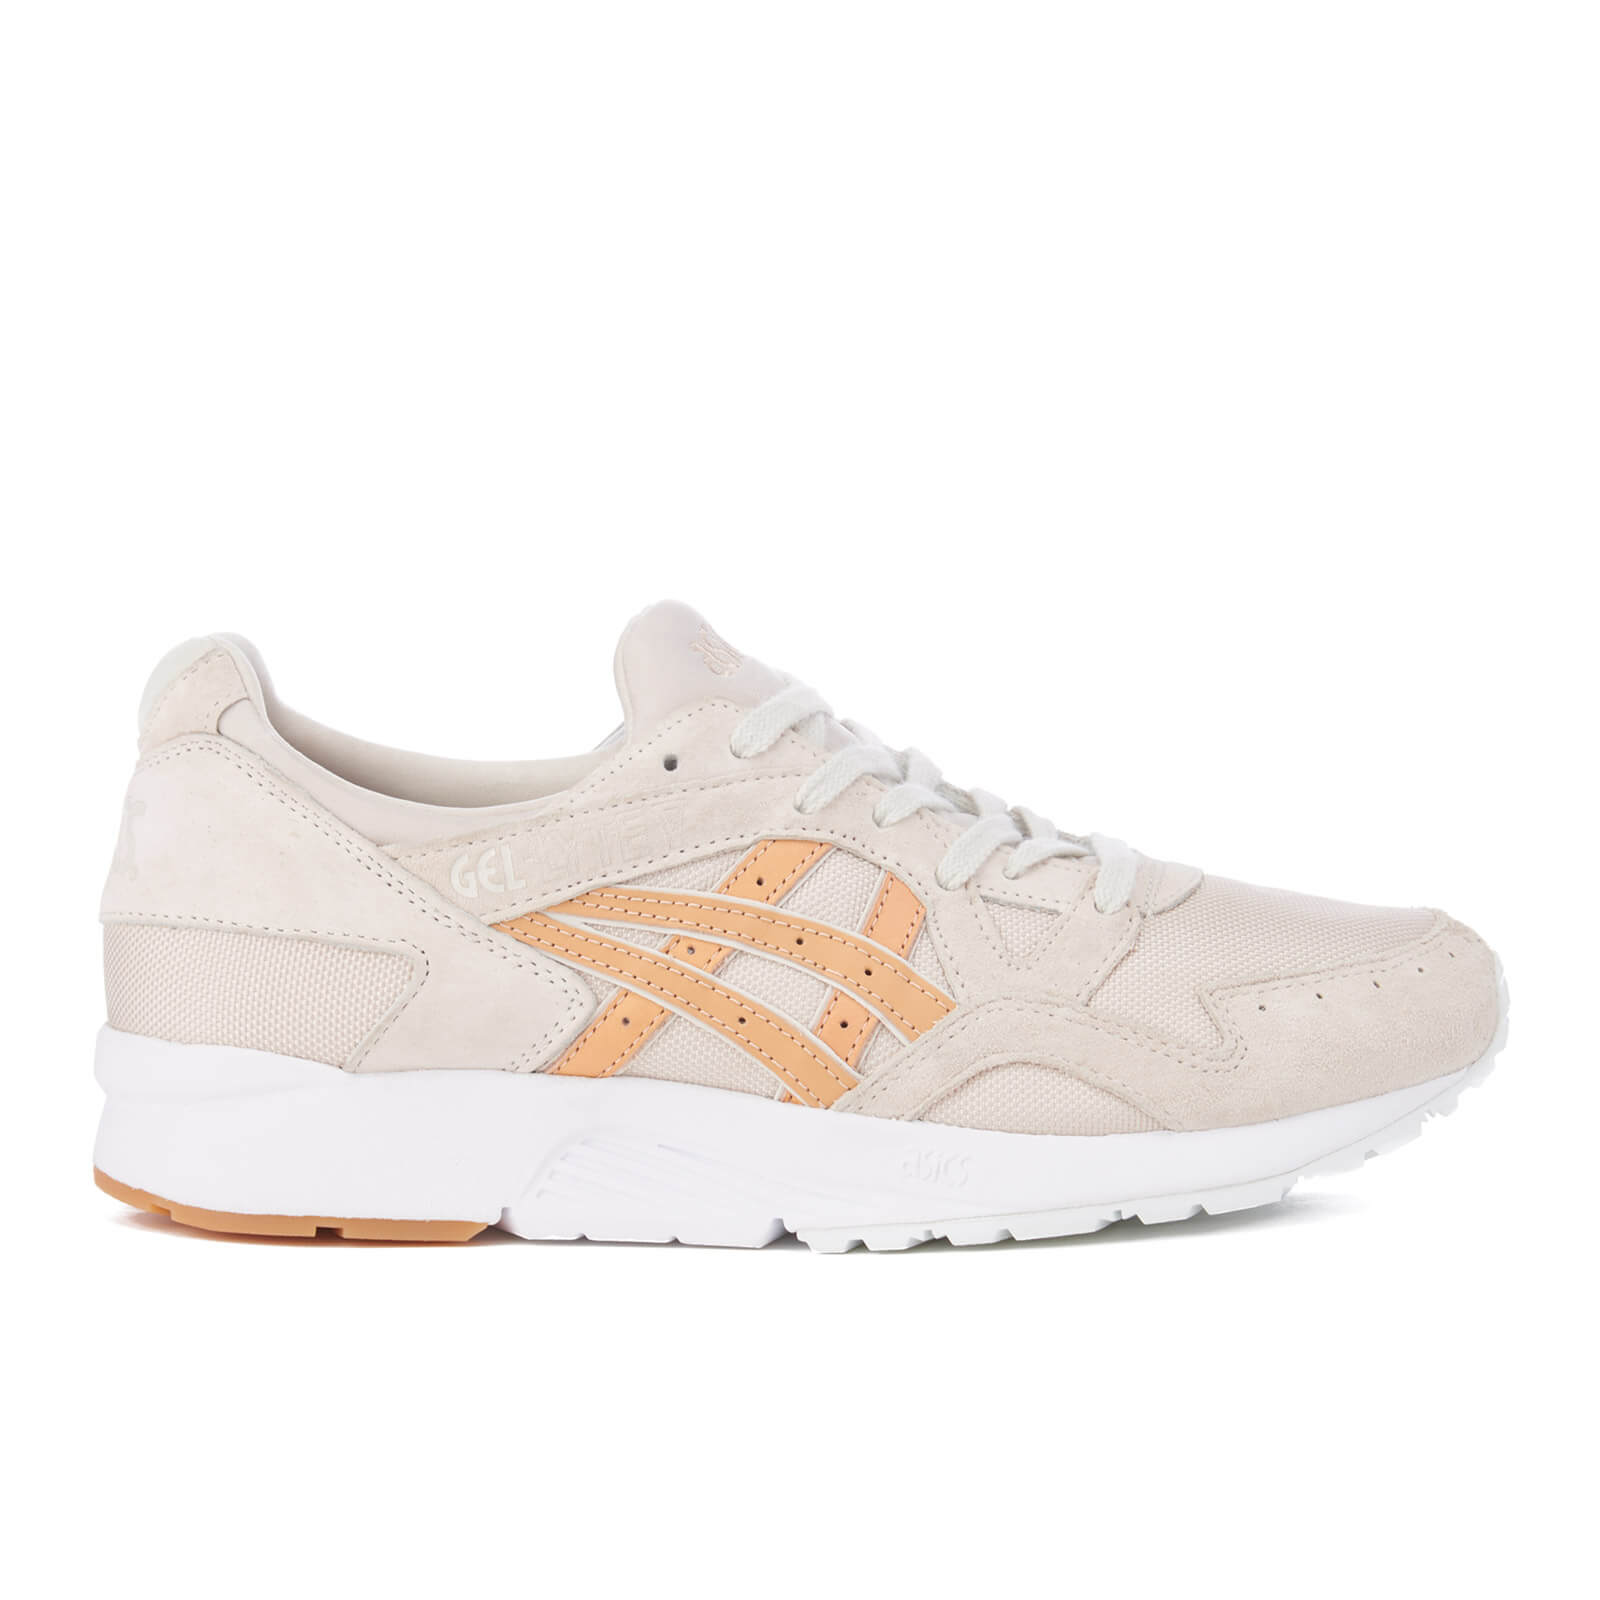 timeless design 6a107 94a53 Asics Lifestyle Gel-Lyte V Trainers - Whisper Pink/Sand